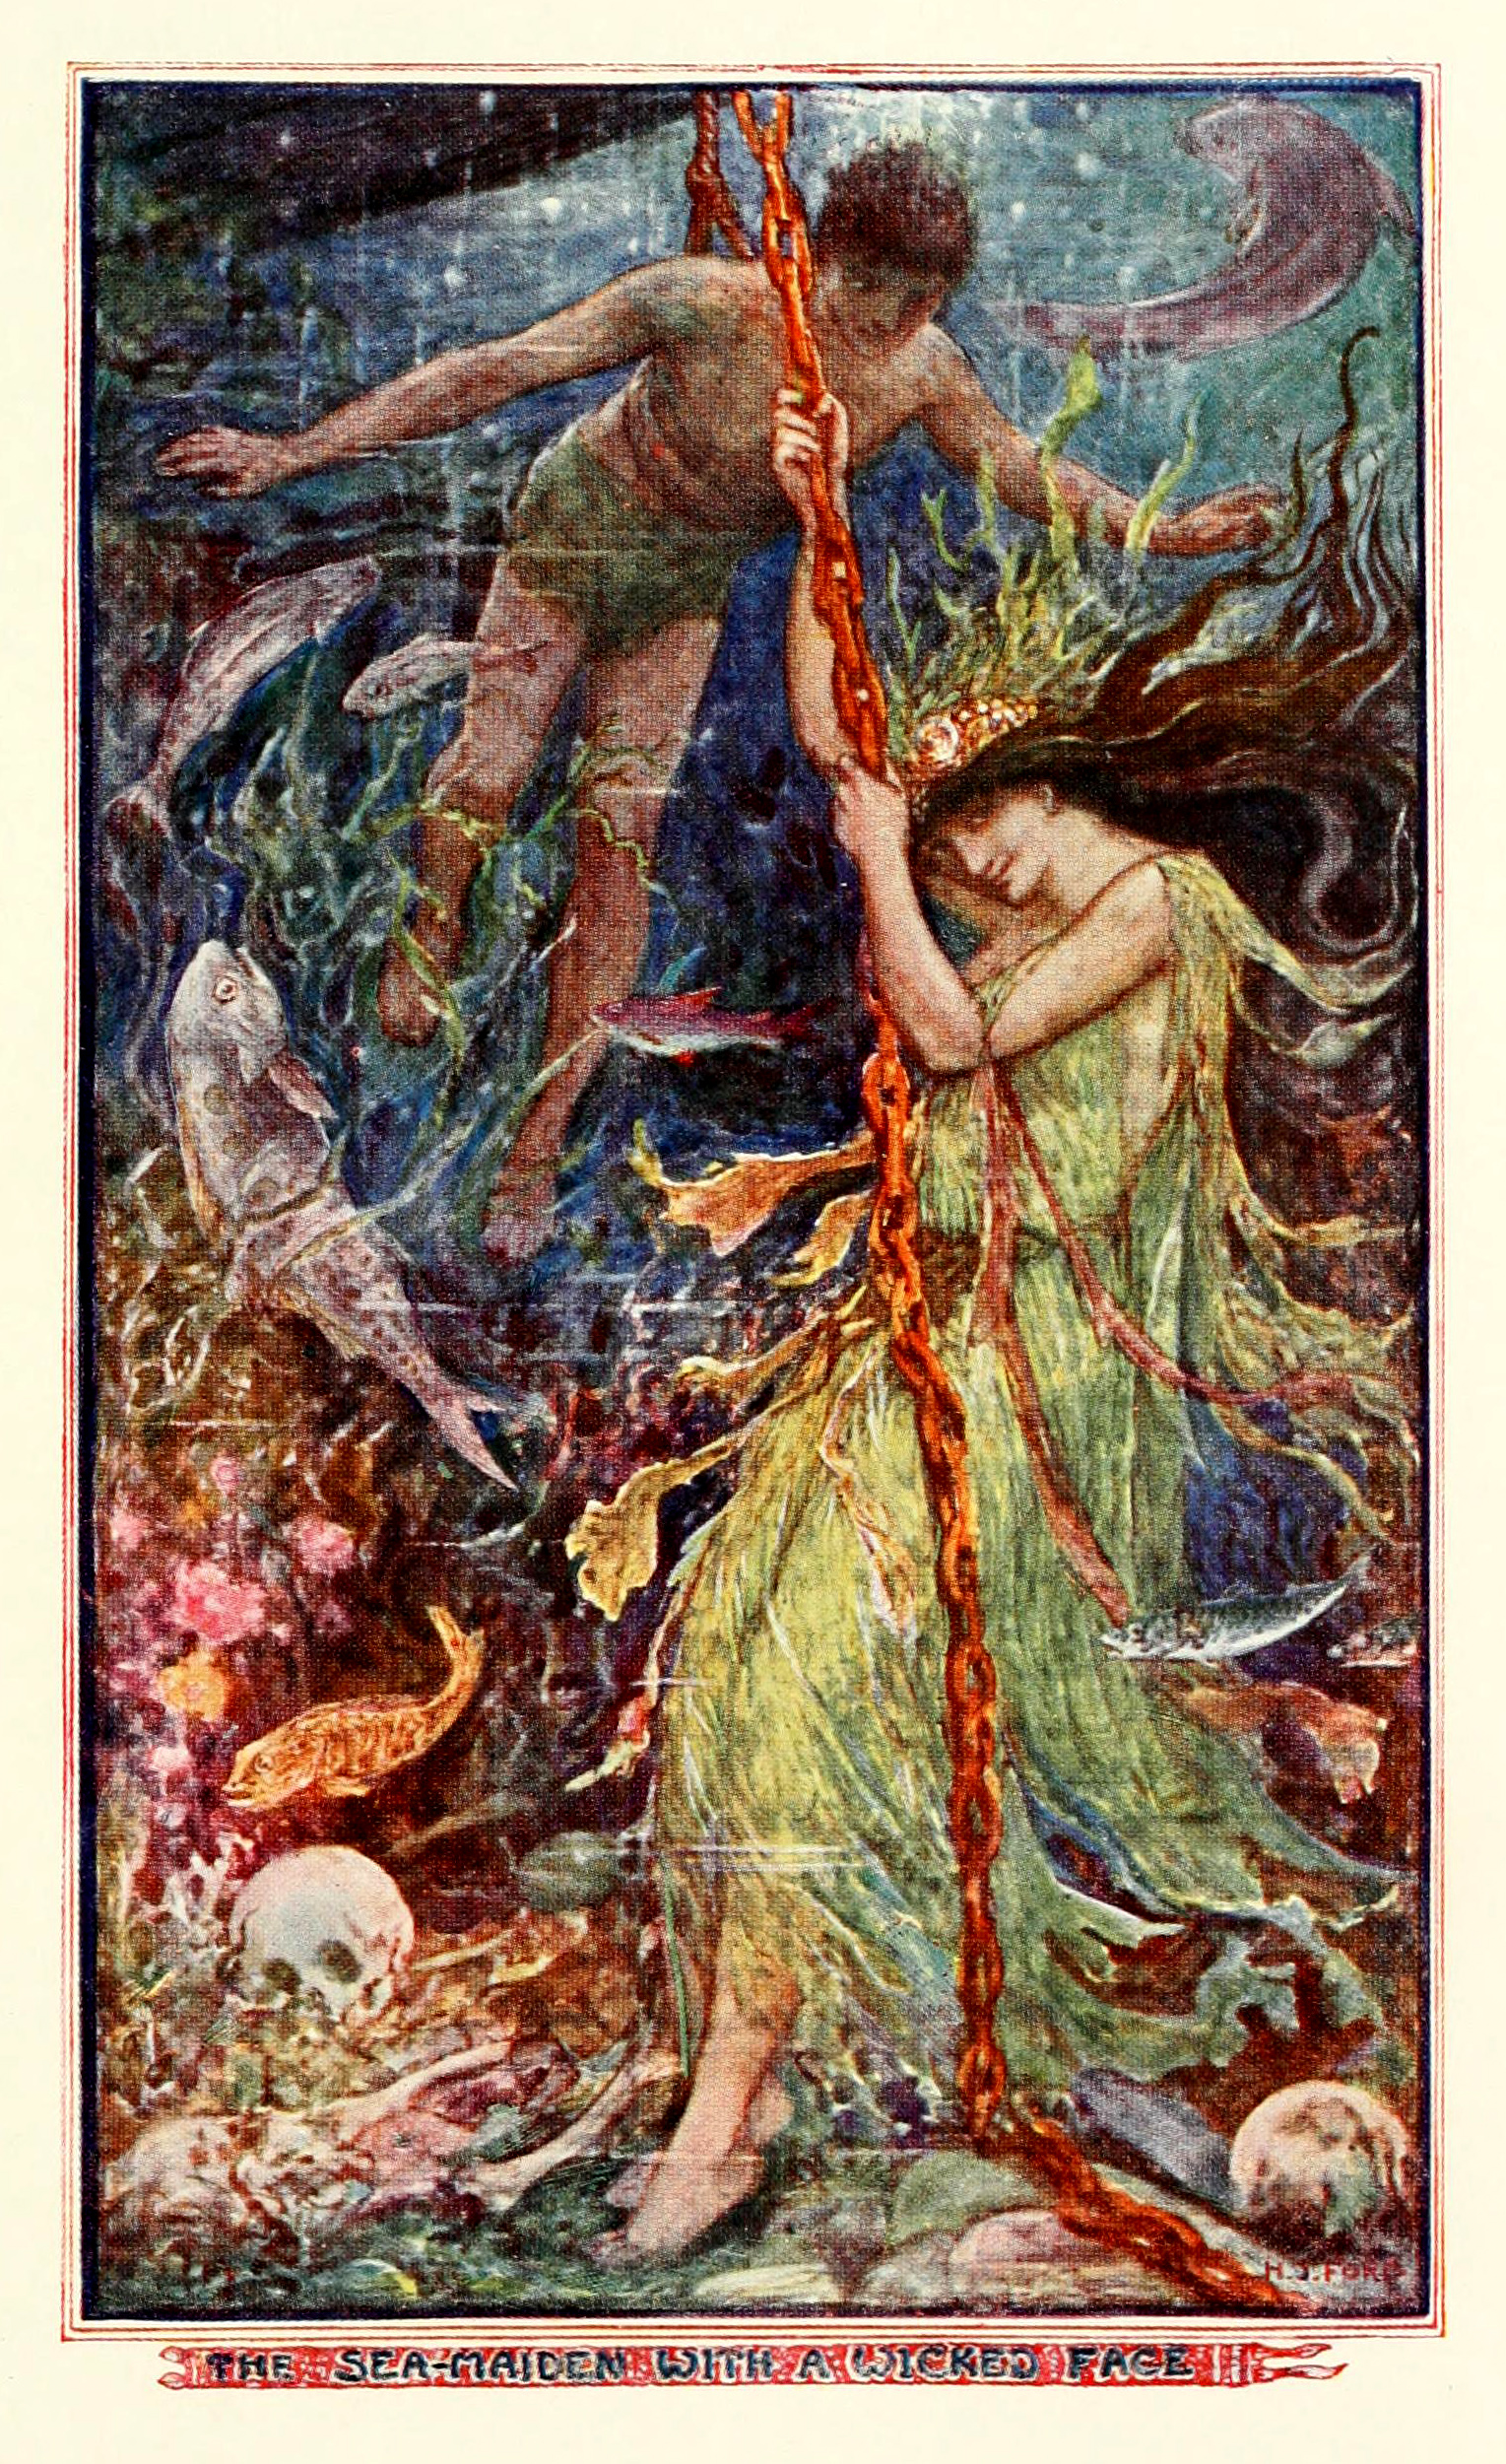 Henry Justice Ford - The olive fairy book, edited by Andrew Lang, 1968 (color plate 2)